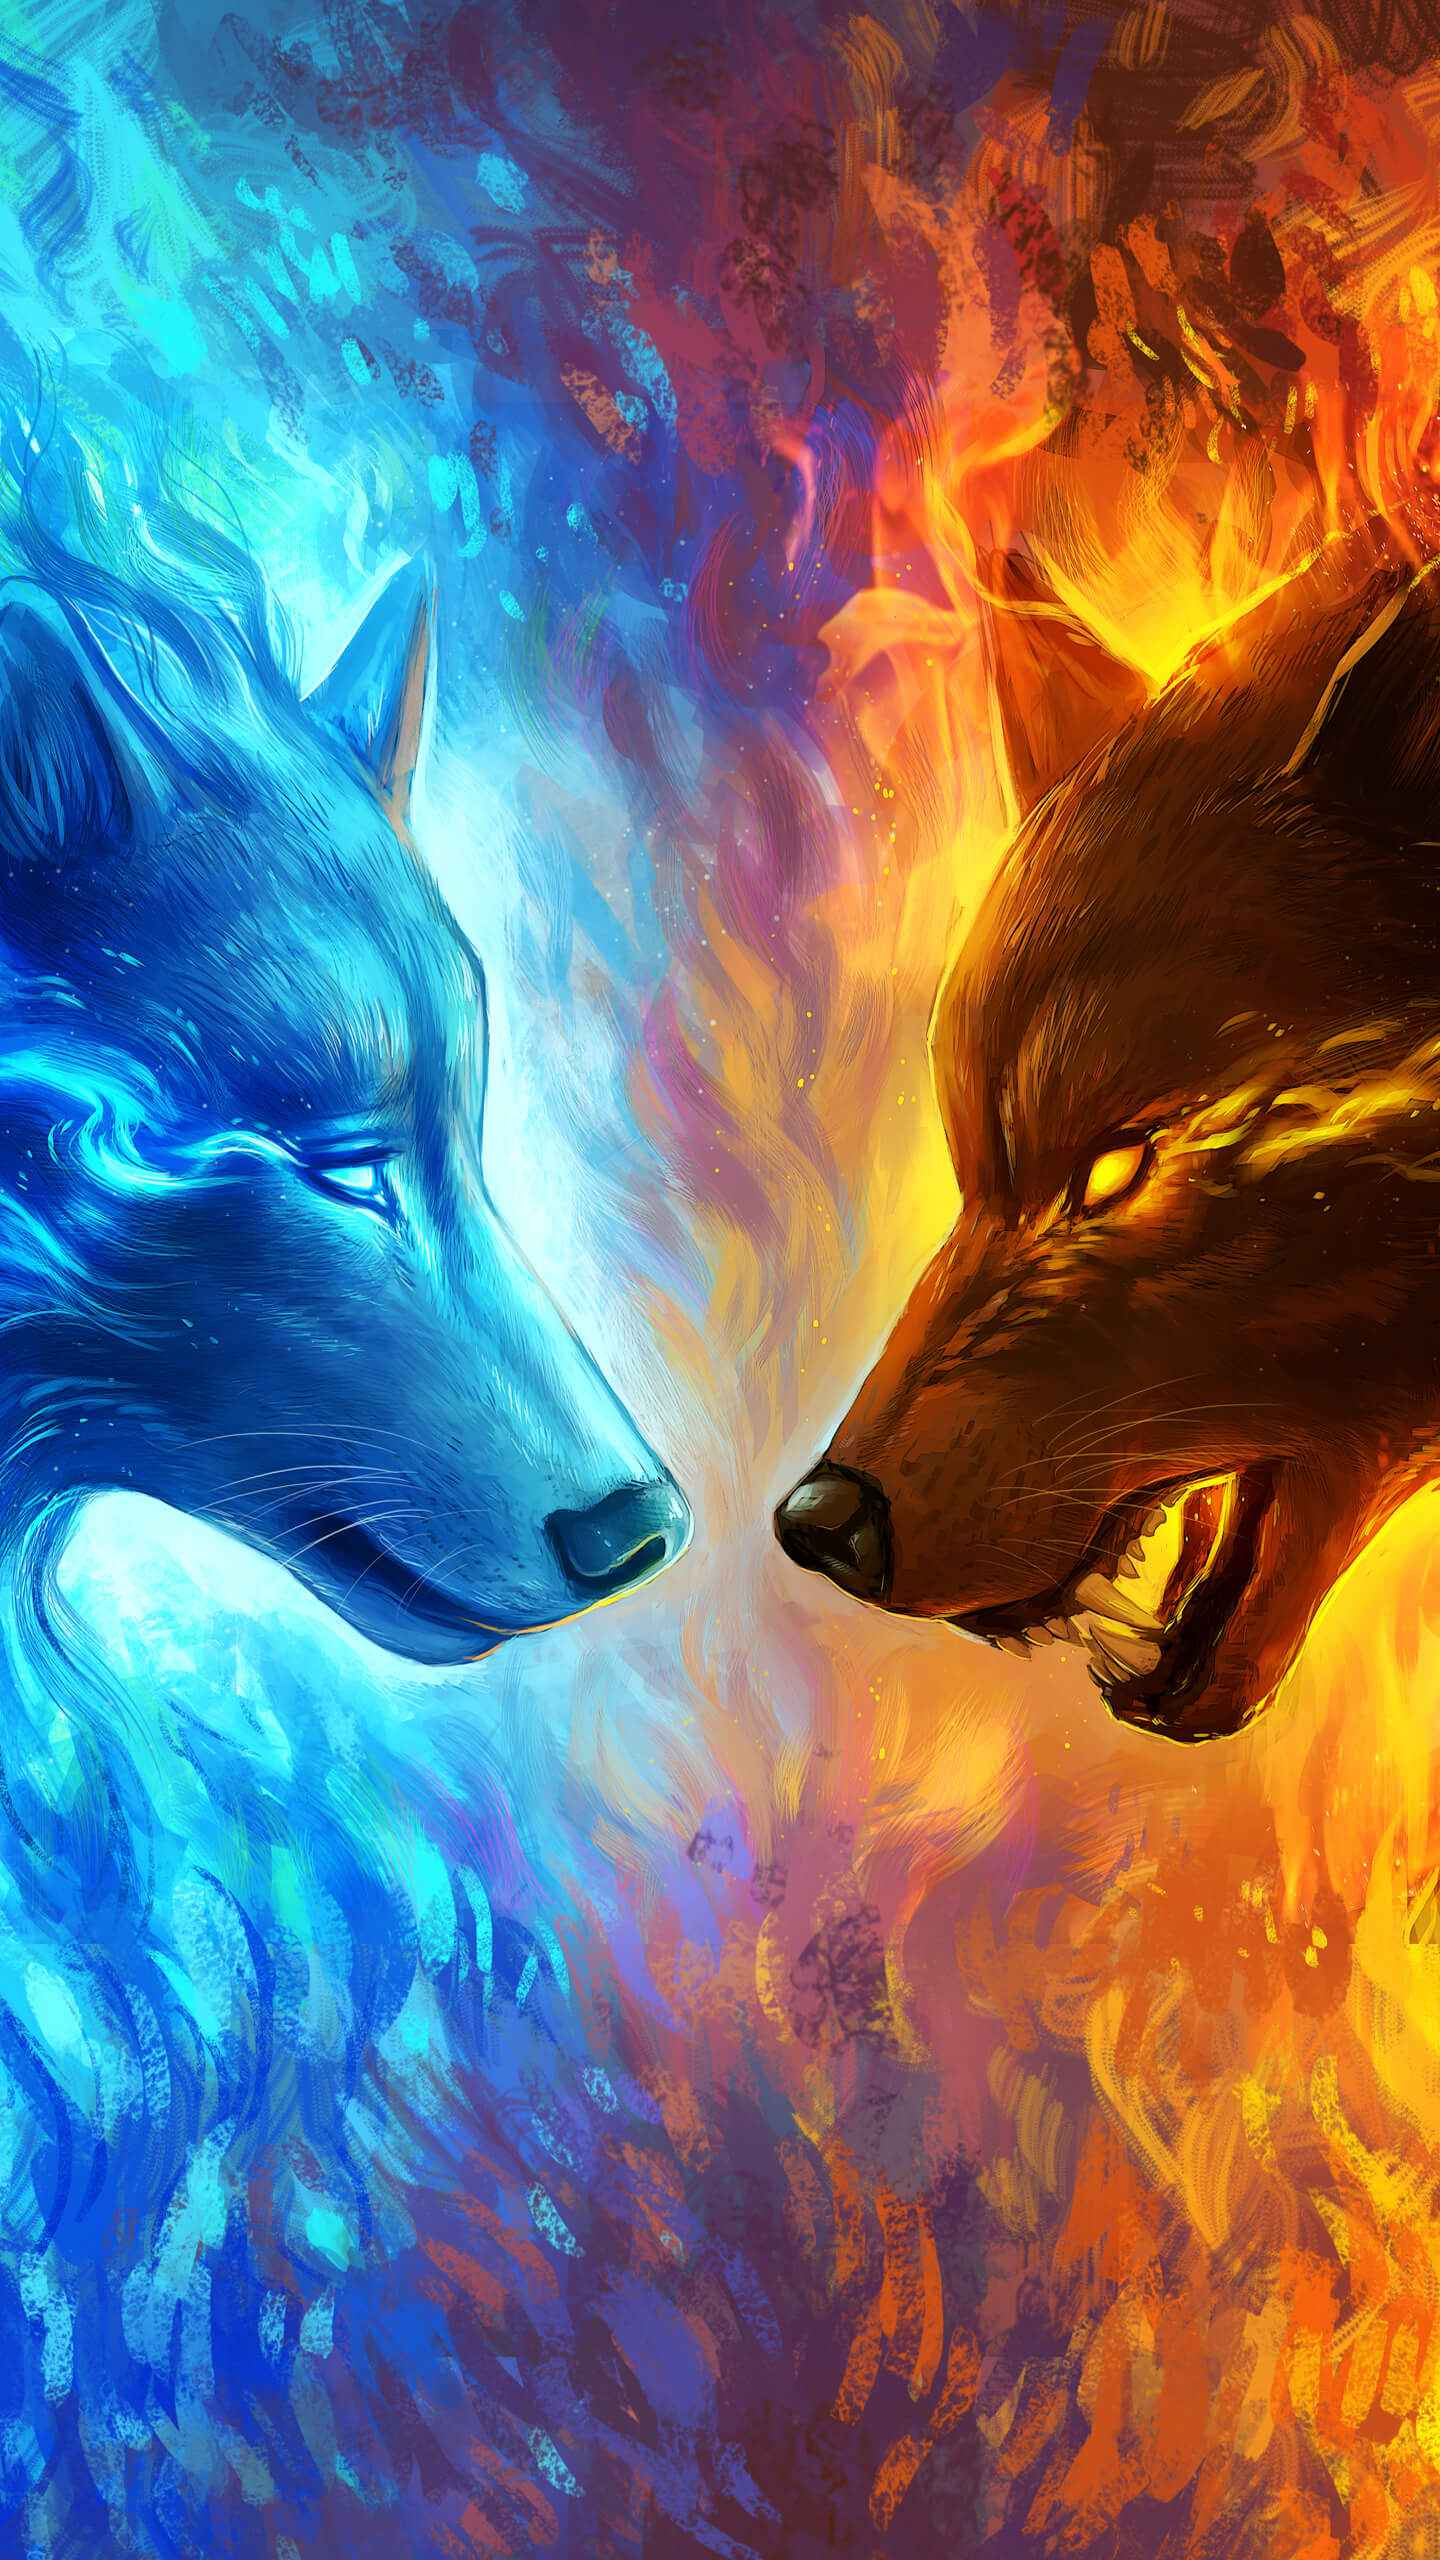 Fire and Ice iPhone Wallpaper - iPhone Wallpapers : iPhone ...